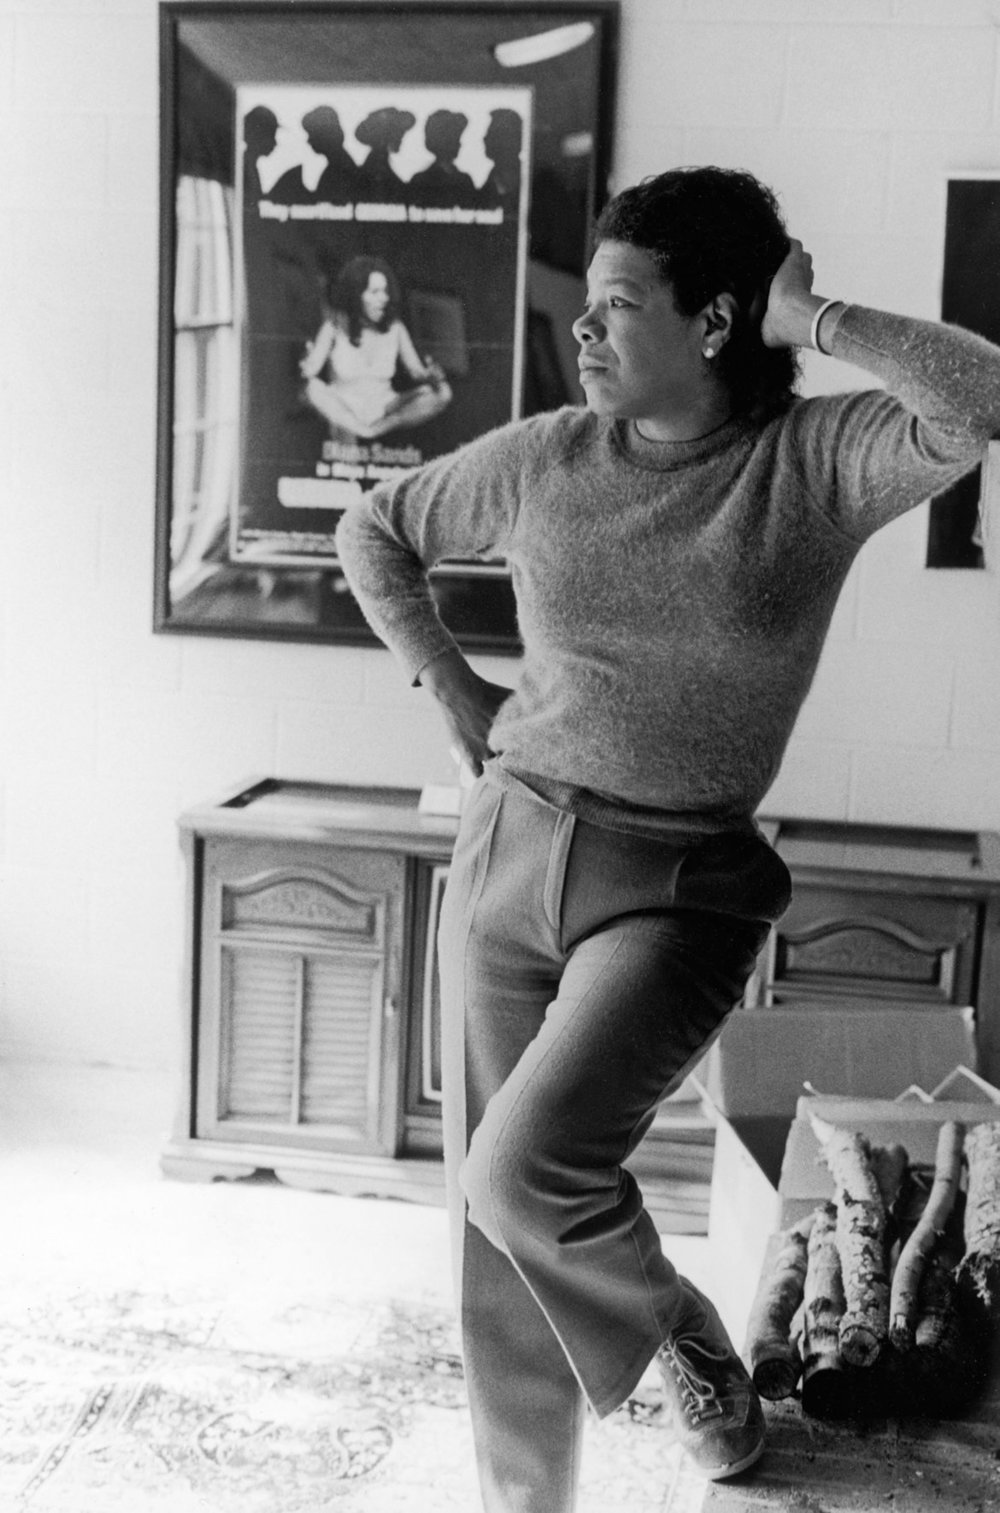 maya-angelou-reflects-while-at-home-in-this-undated-photo.jpg